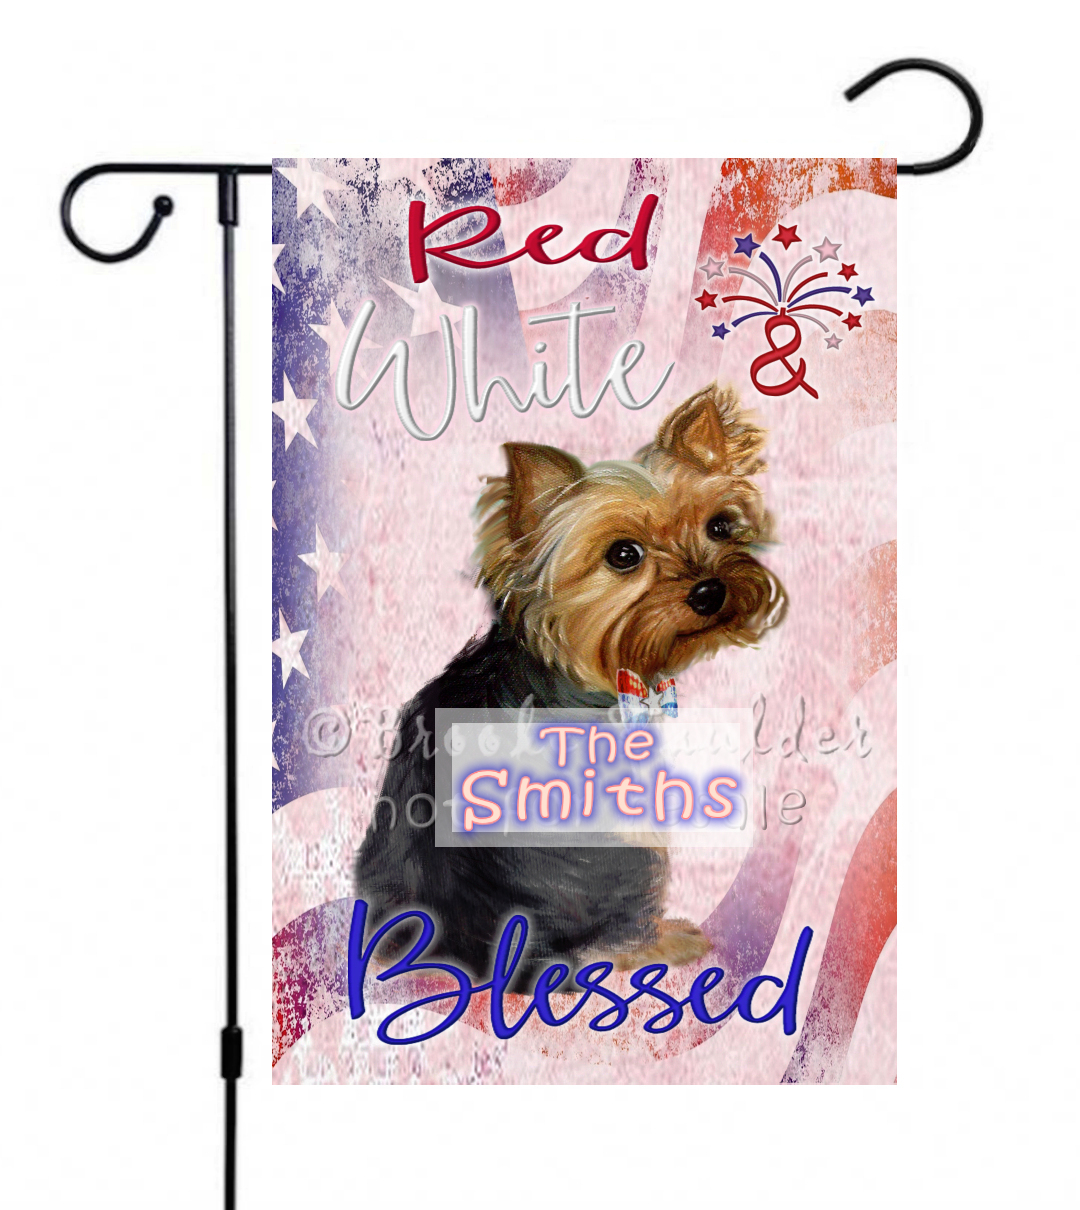 Personalized July 4th flag with Yorkshire terrier